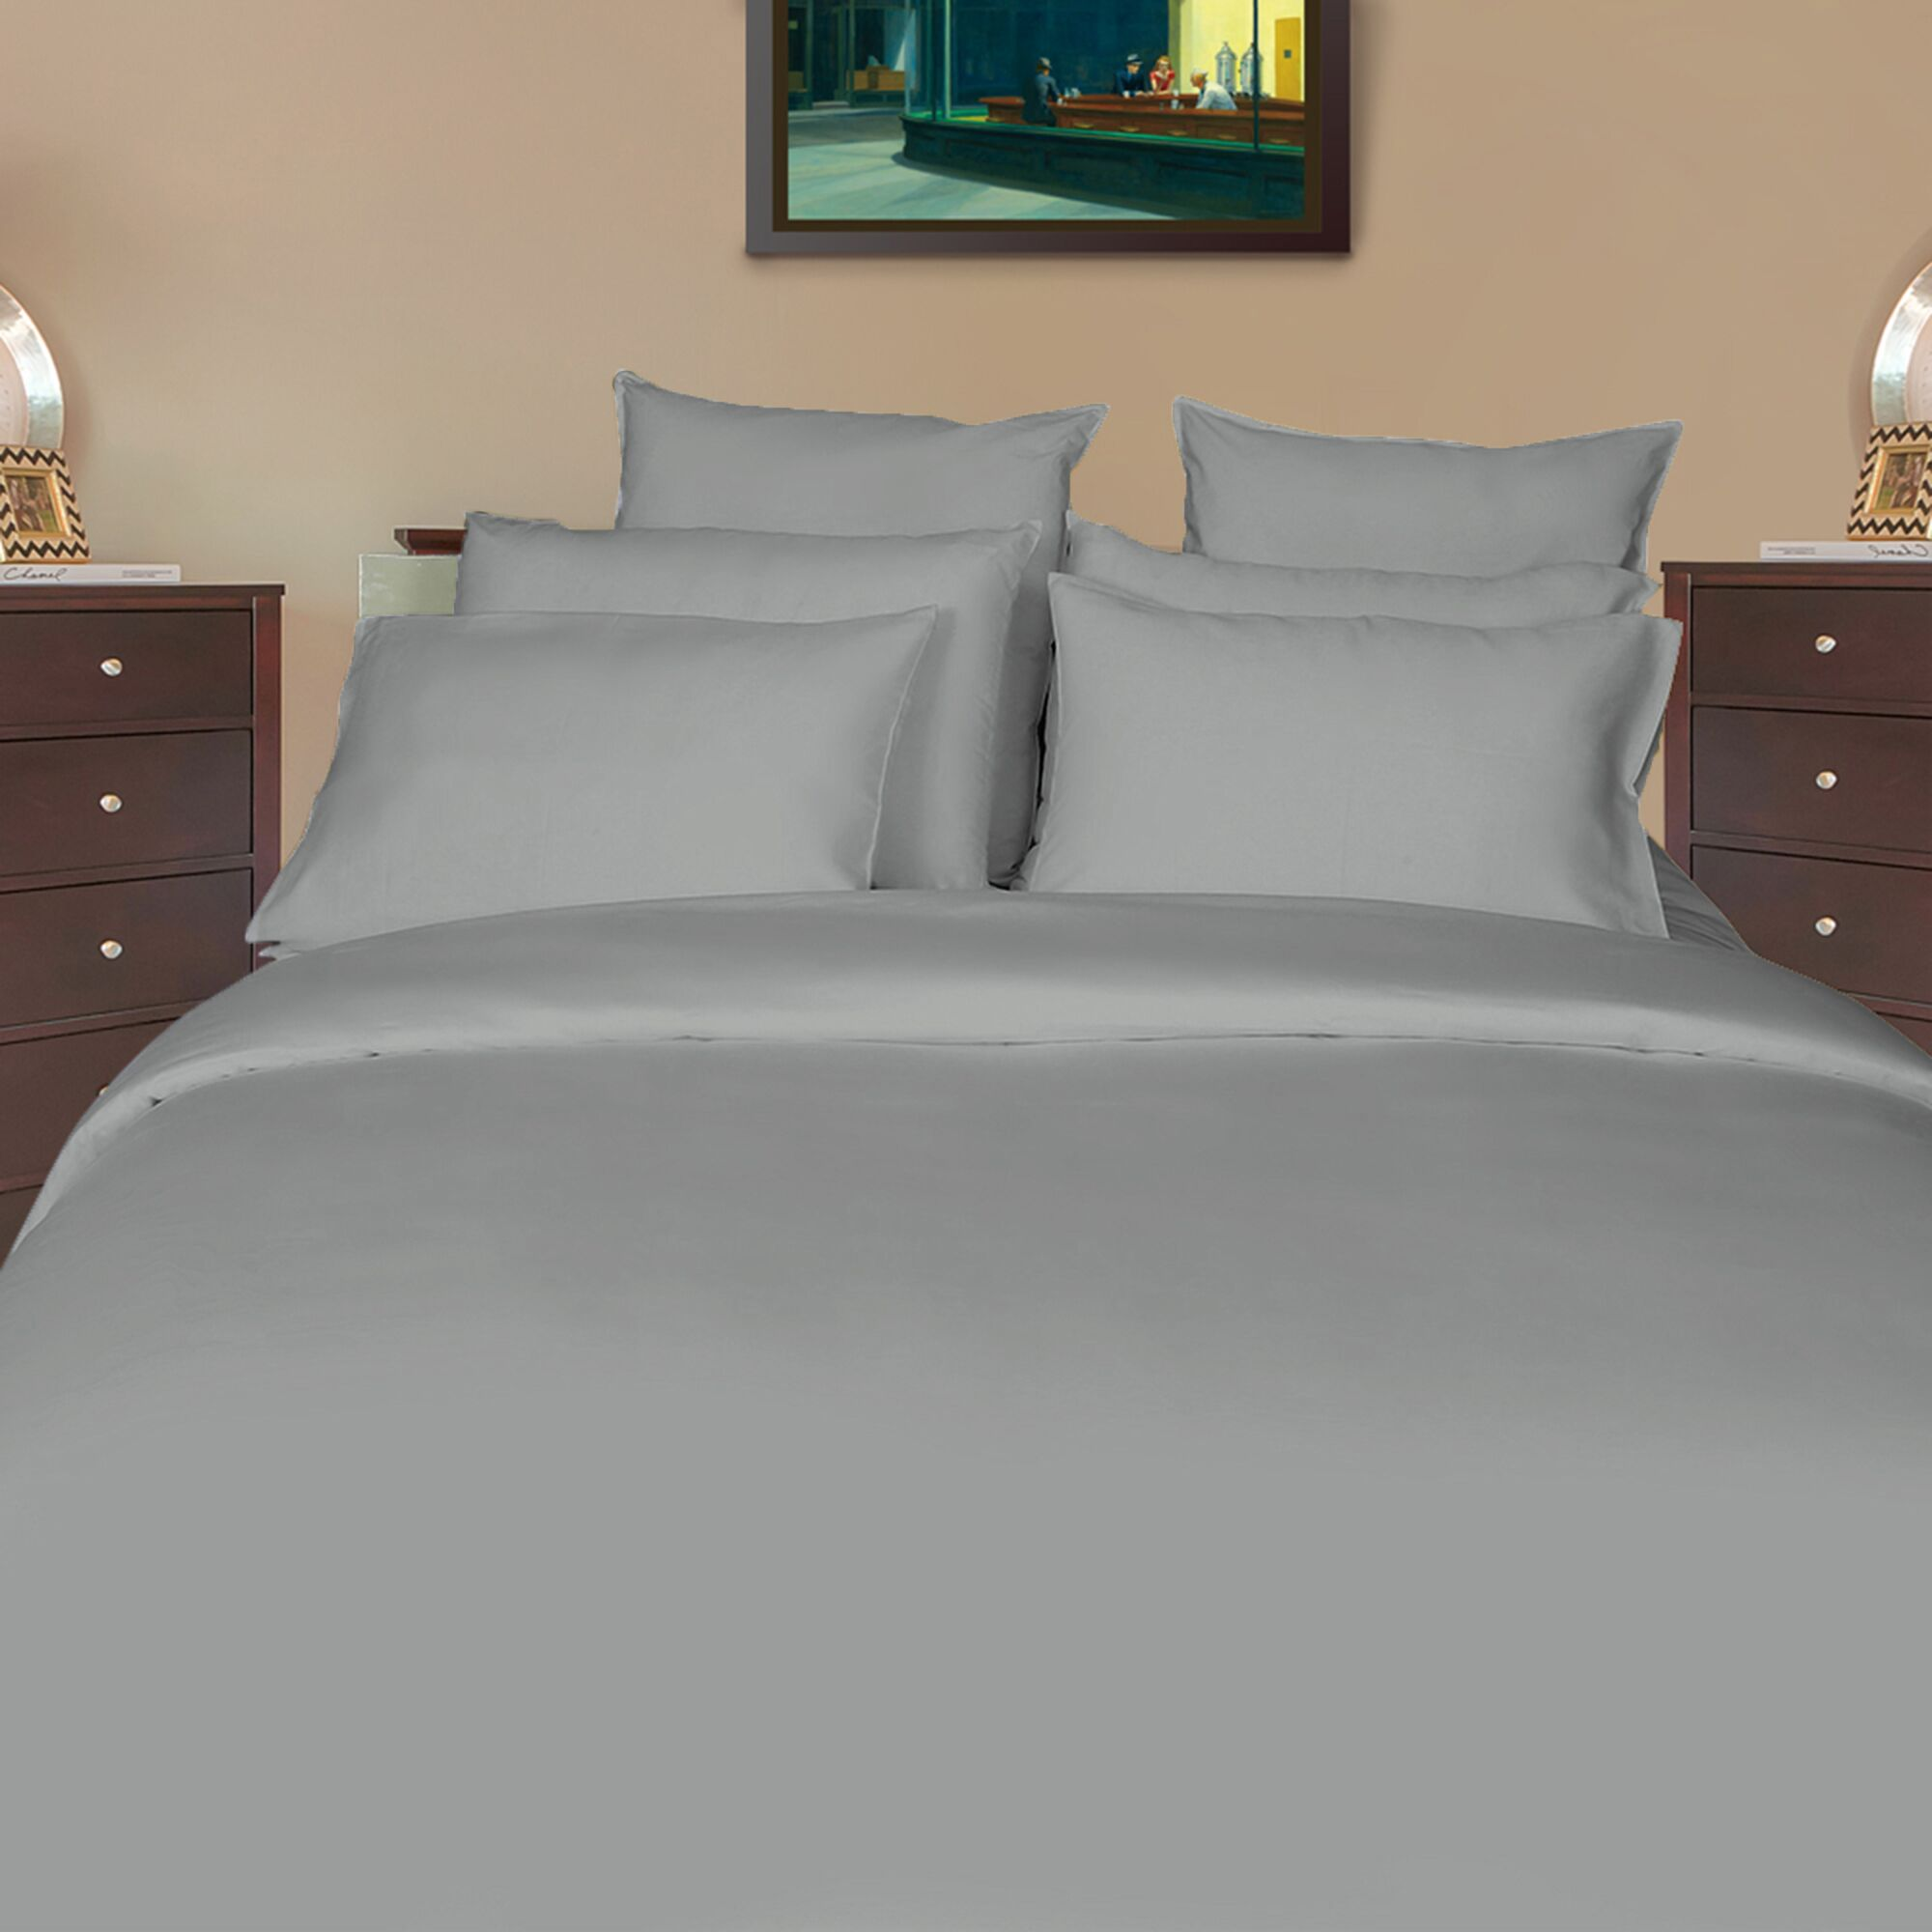 Iacovelli Sateen Solid 700 Thread Count 100% Cotton Sheet Set Color: Drizzle, Size: Twin